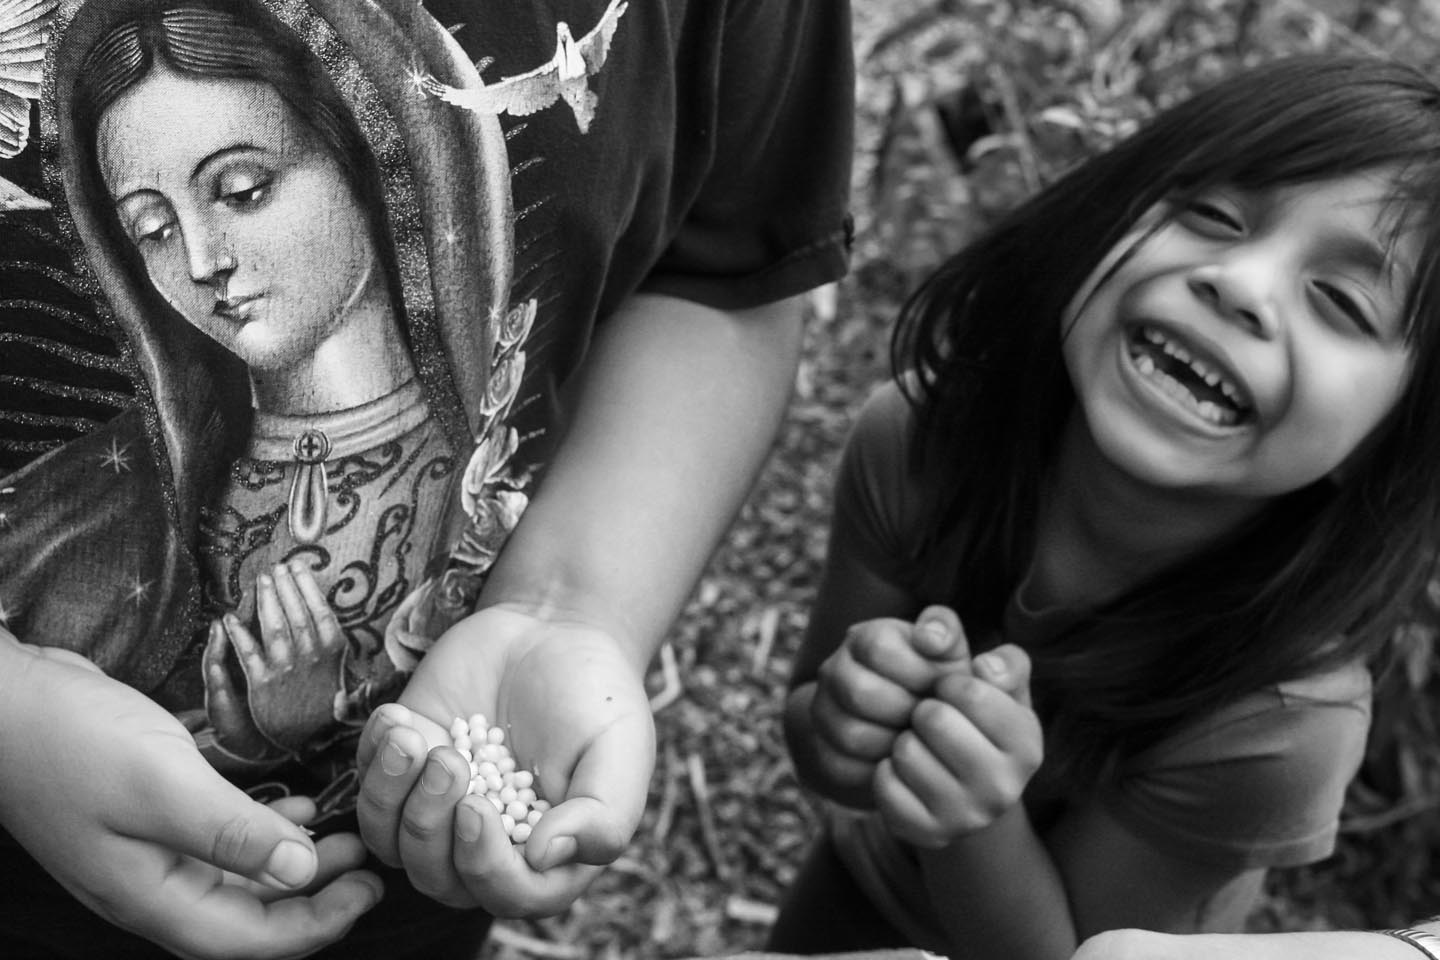 Photo of smiling young girl in a Bronx farm called La Finca del Sur, next to t-shirt showing the Virgin Mary. Photo: David Gonzales